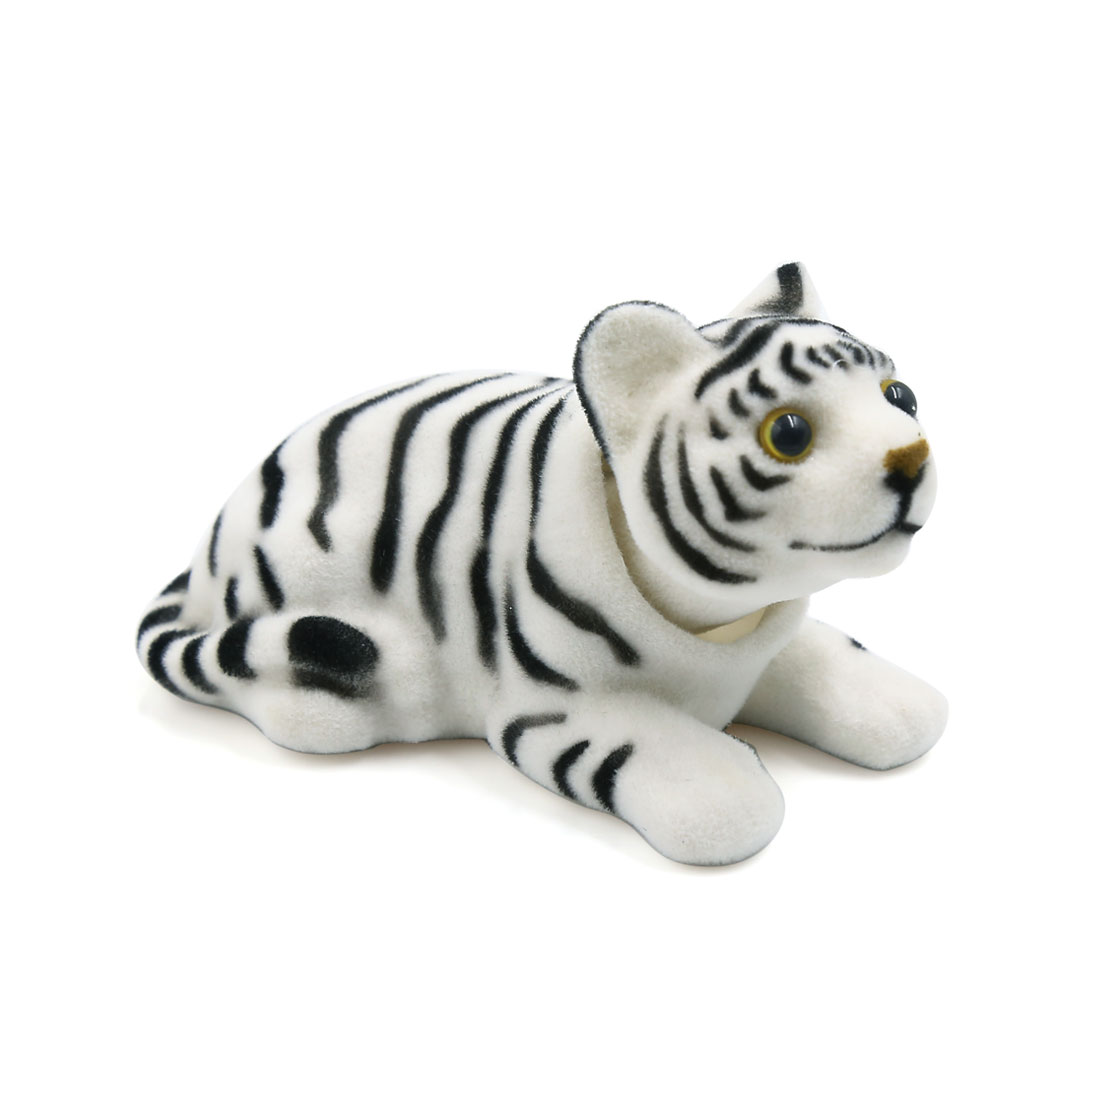 Car Tiger Shape Nod Nodding Bobblehead Dashboard Decoration White Black